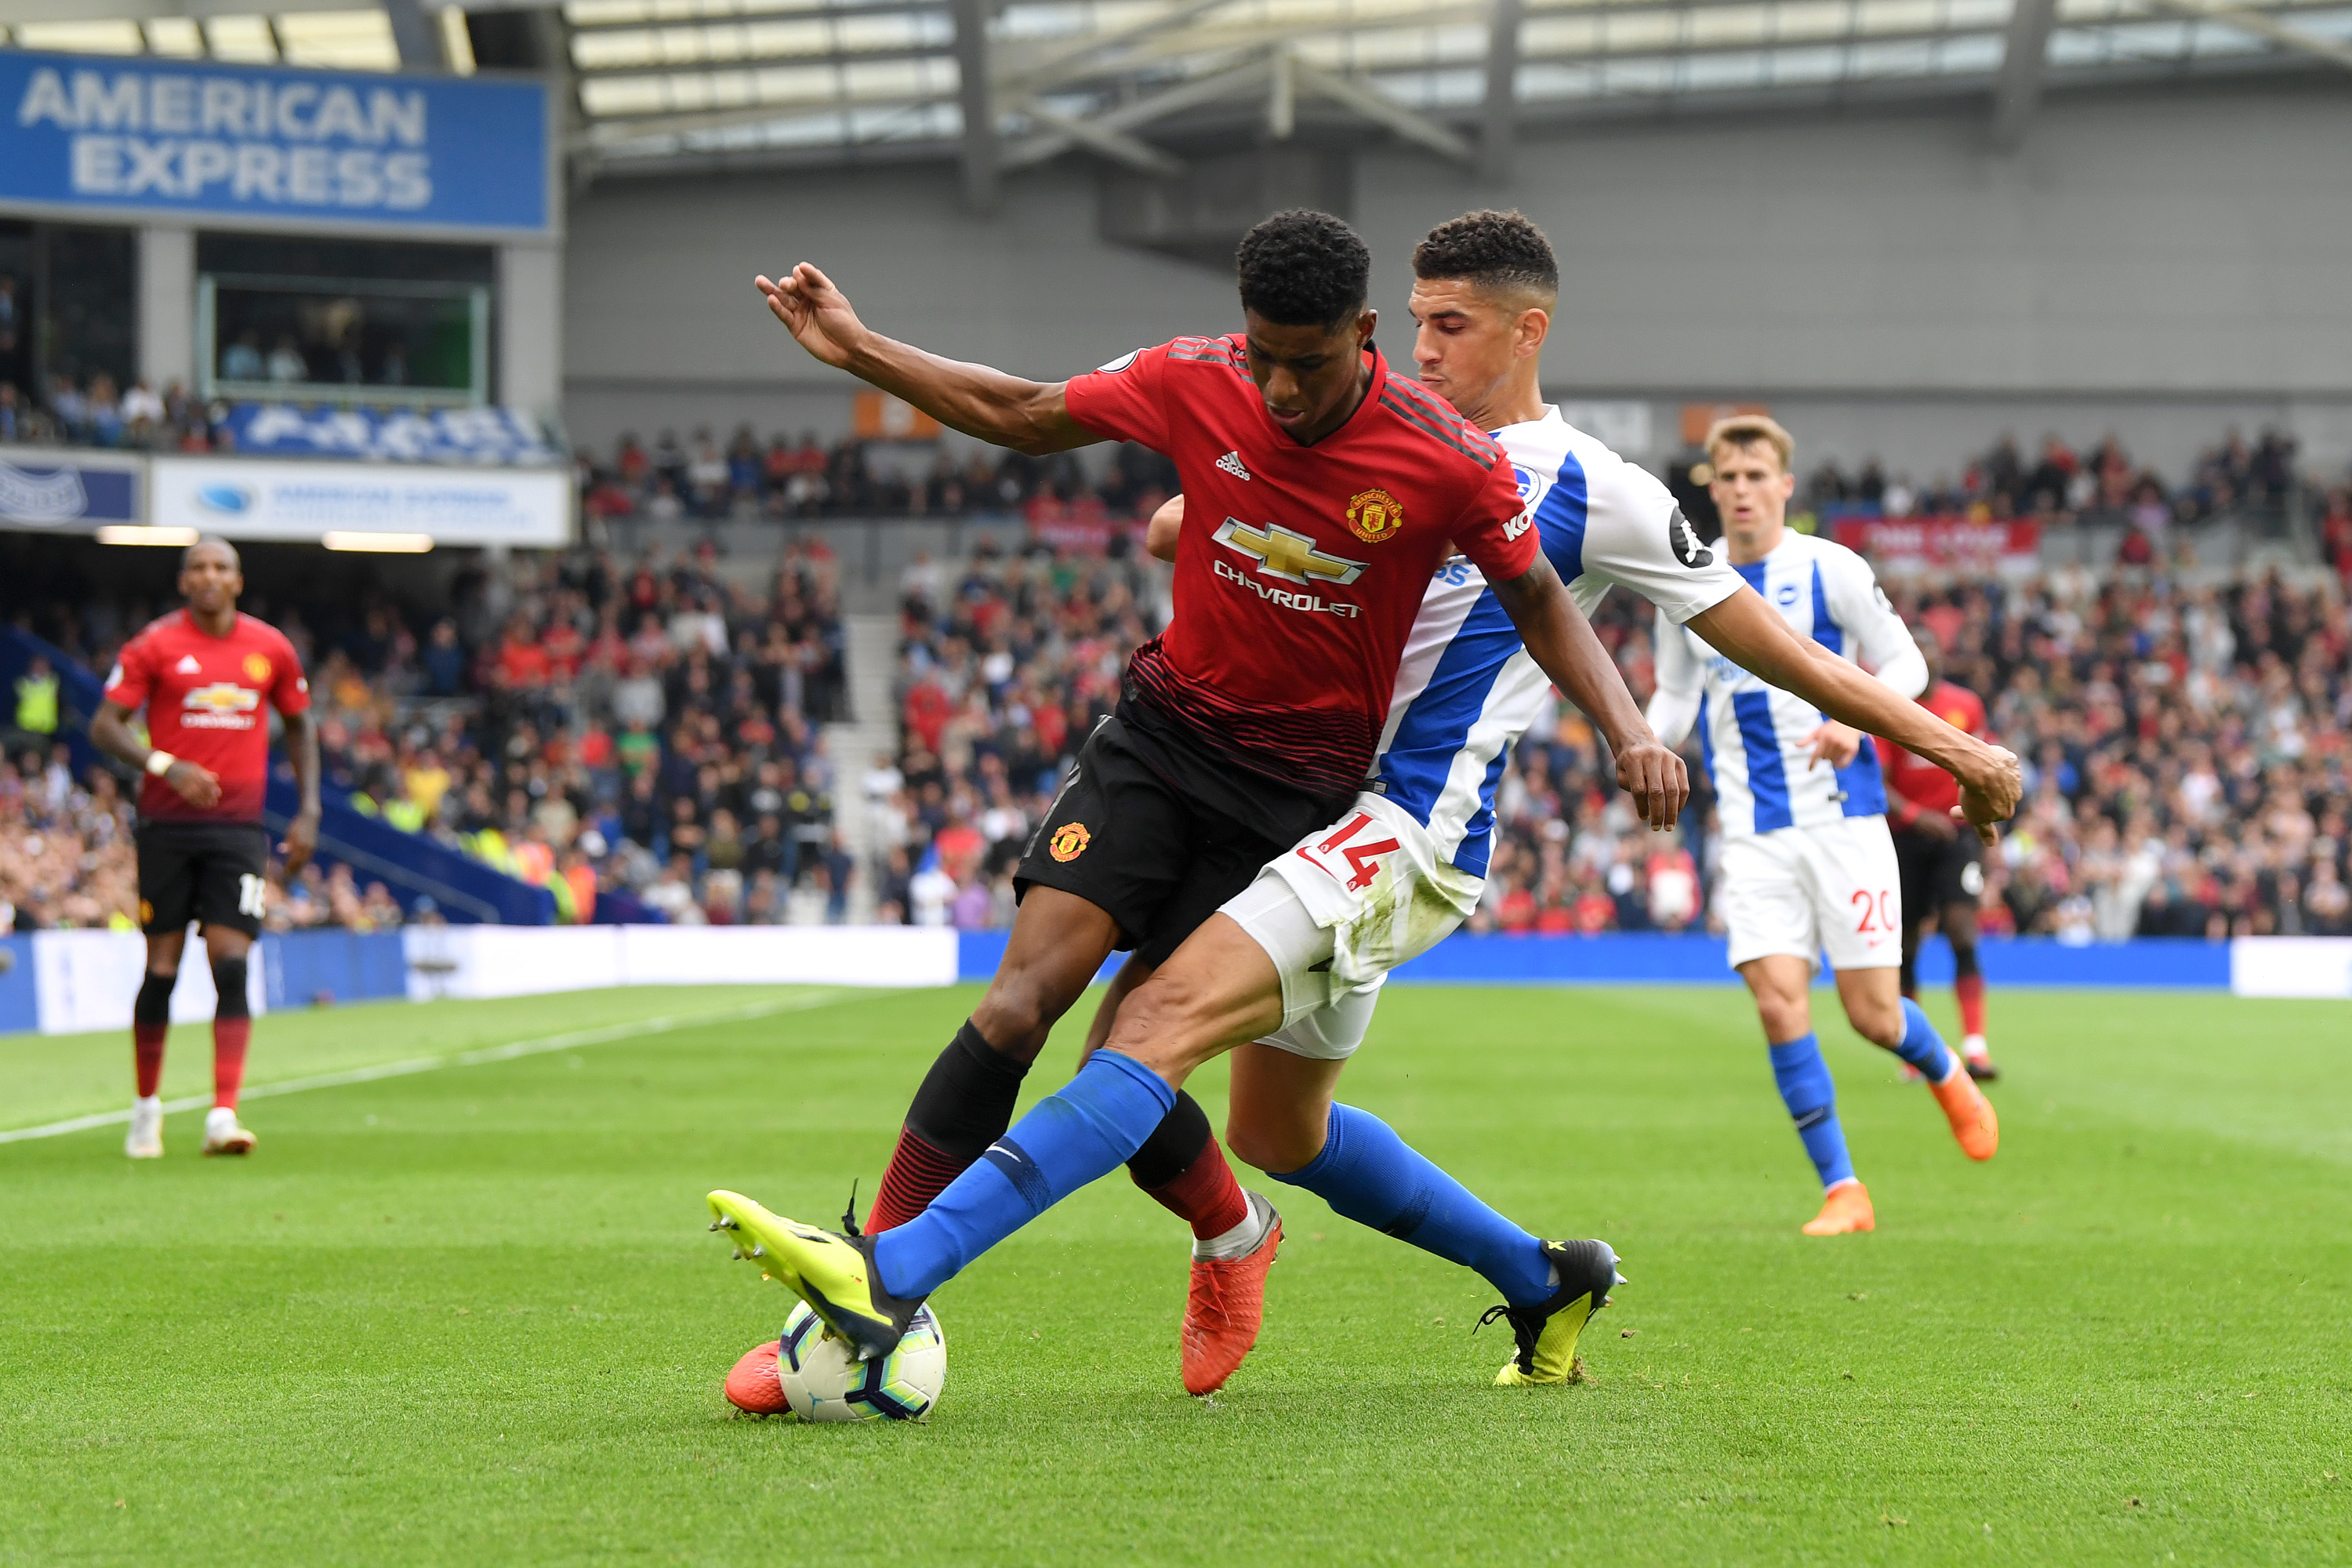 Brighton 3-2 United: absolute garbage from start to finish